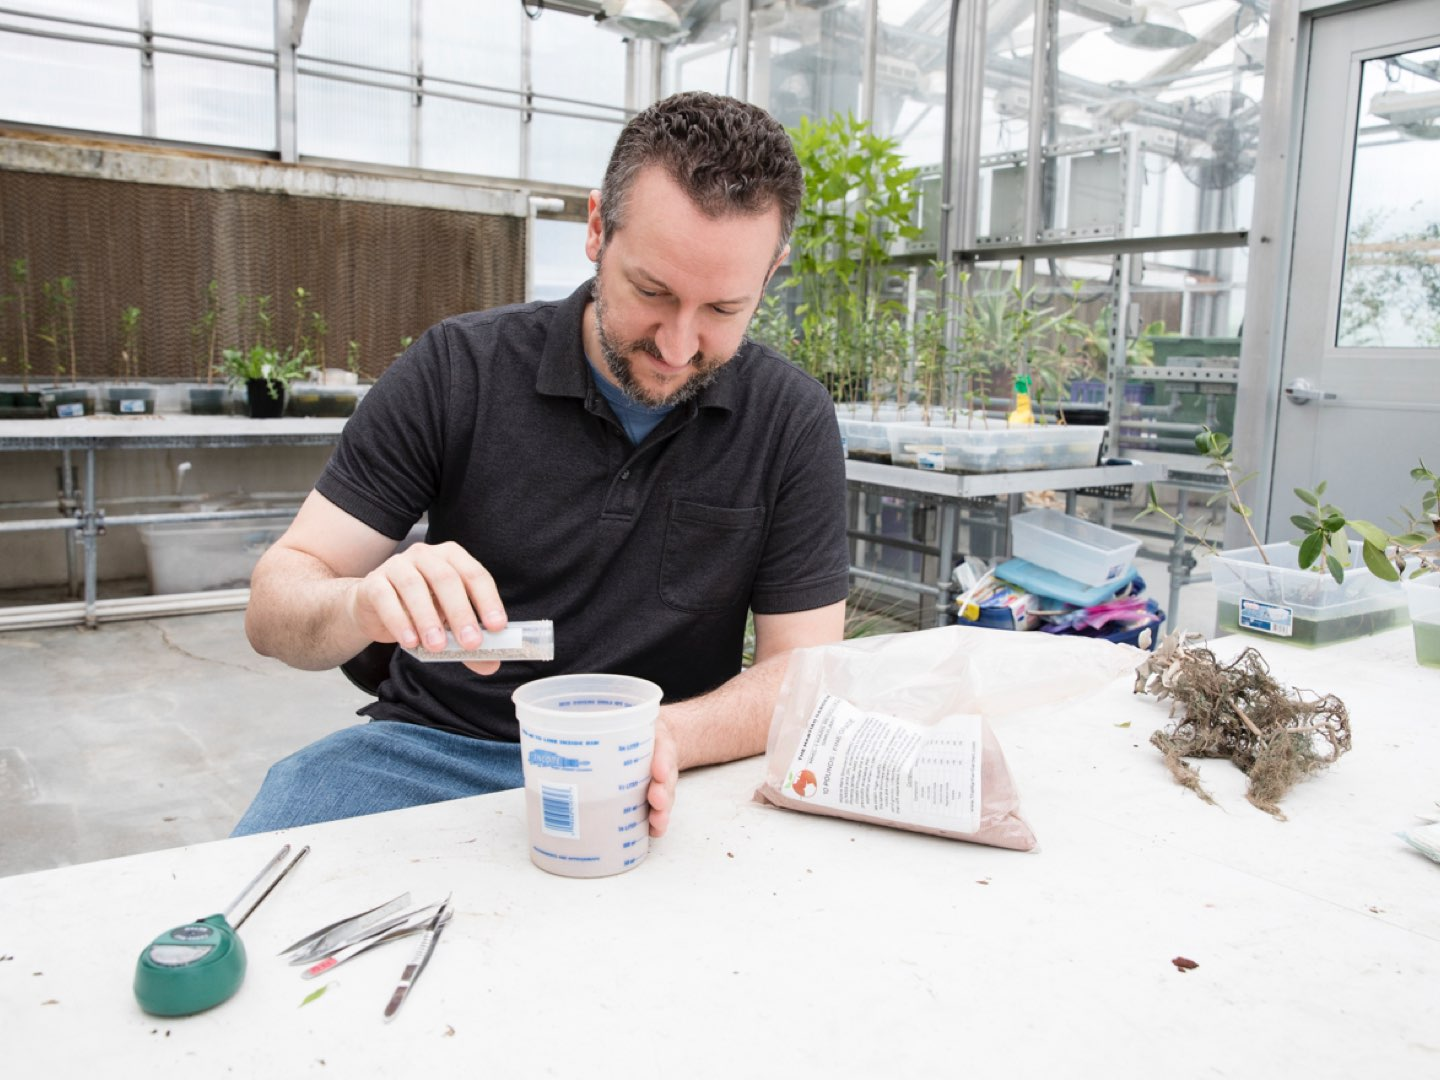 Scott Engle experiments with Martian soil.